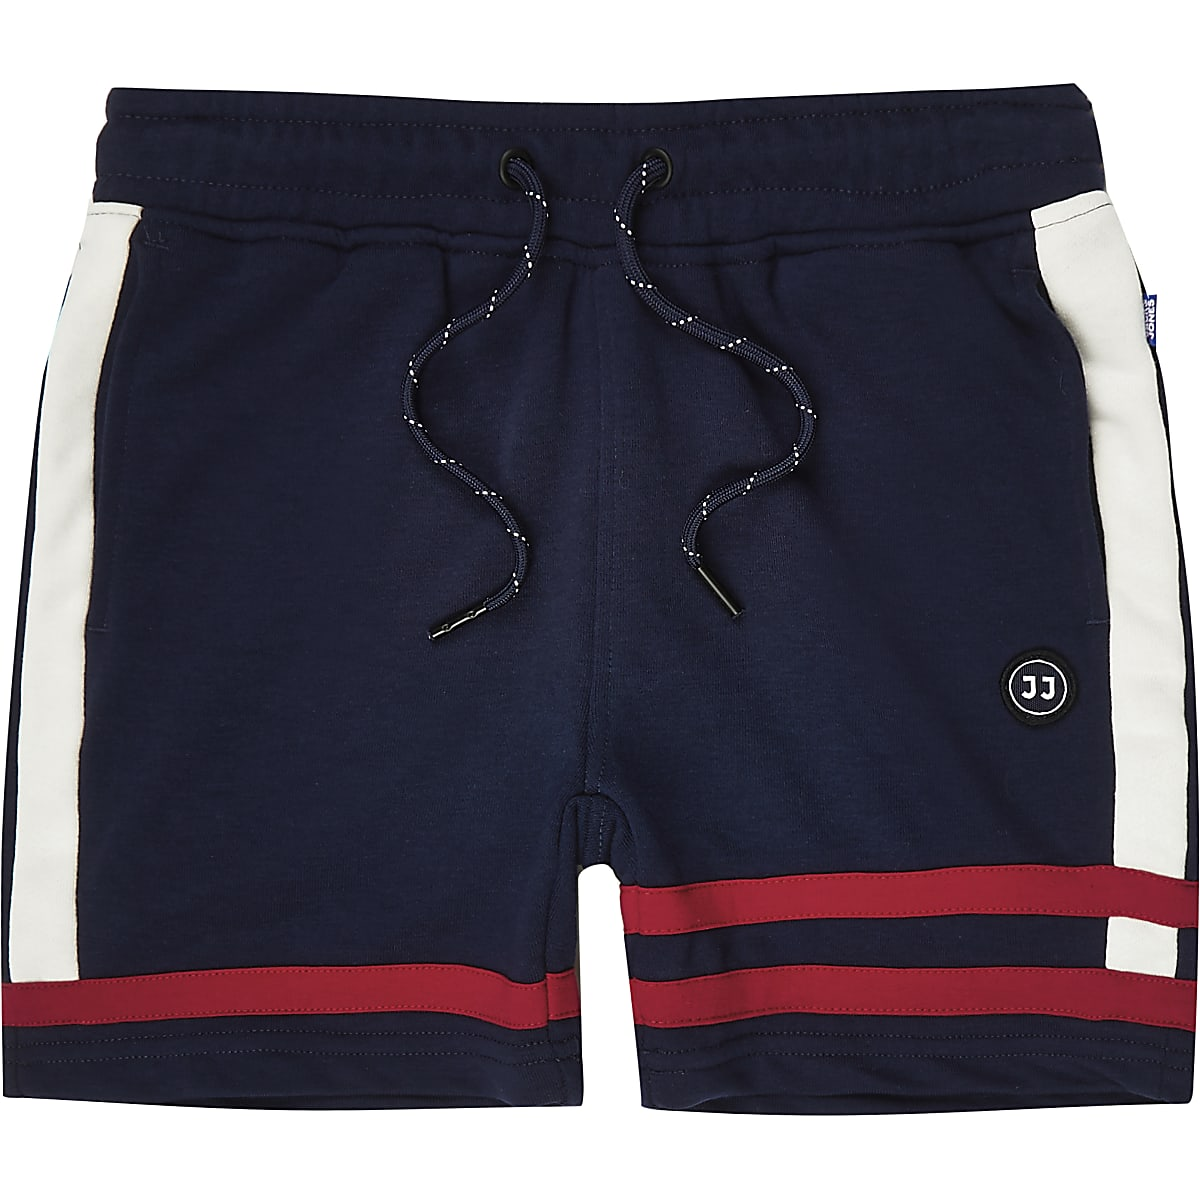 Boys Jack and Jones blue jersey shorts